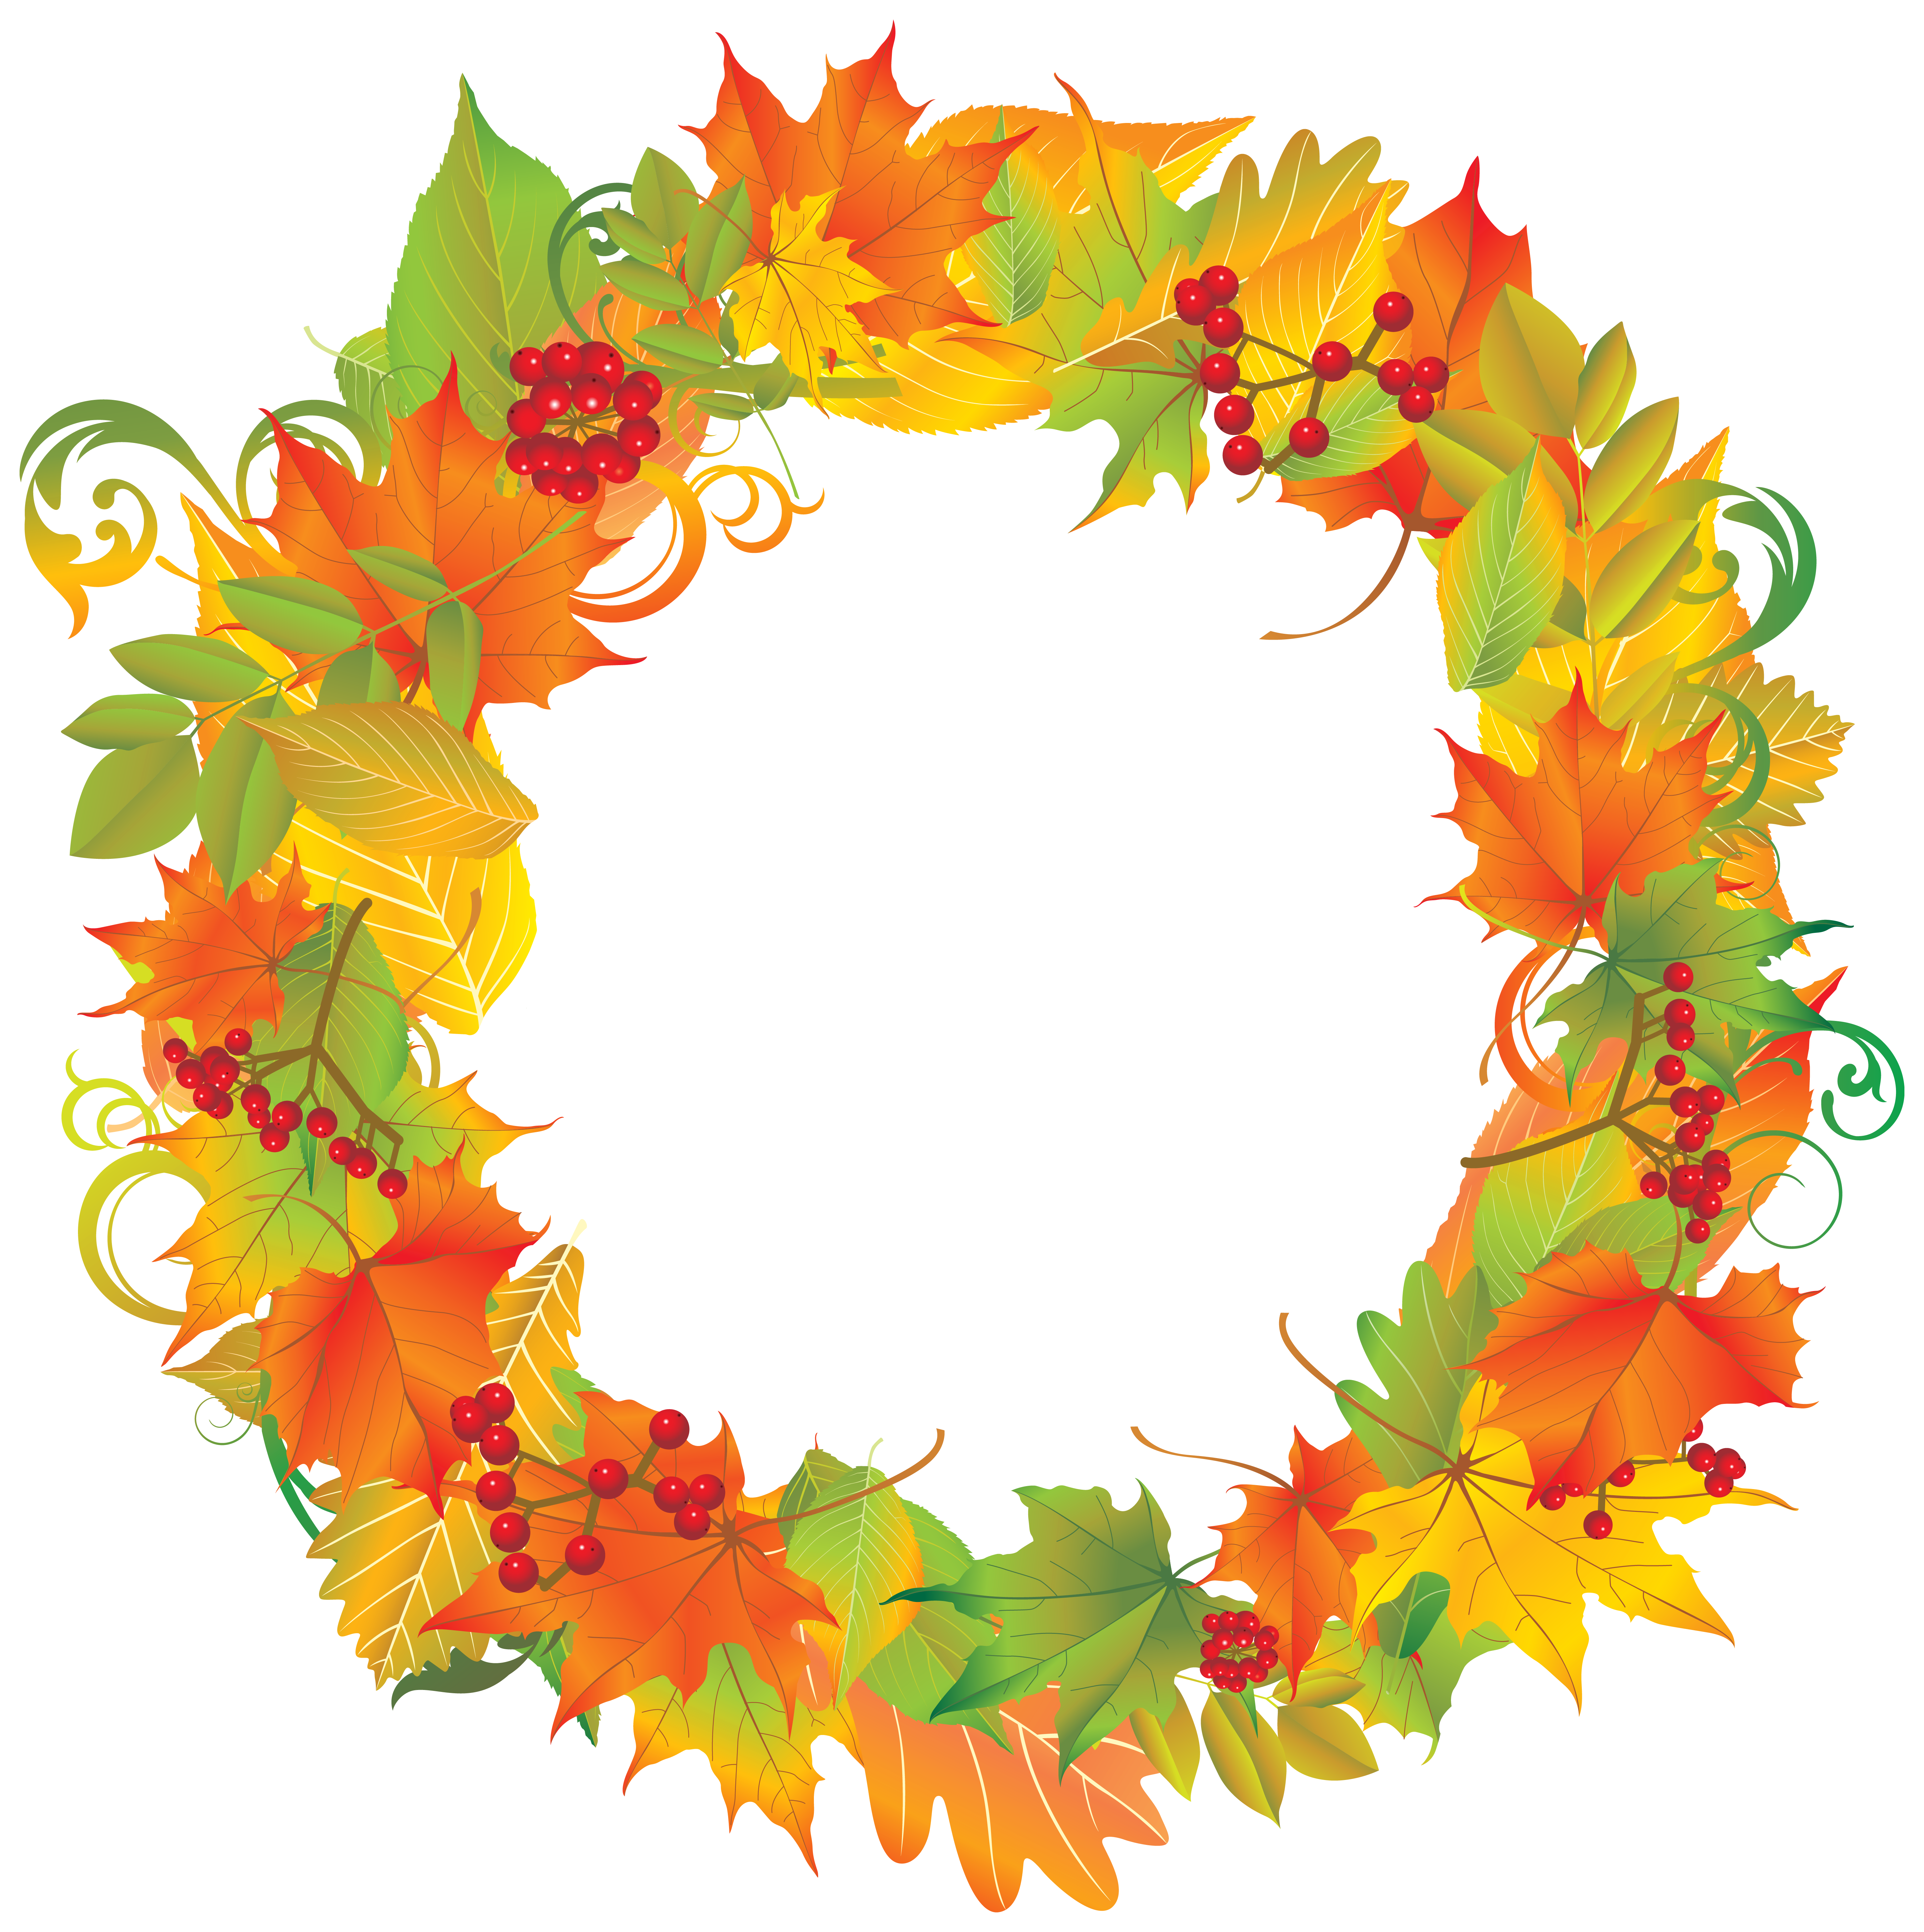 picture royalty free Autumn png image gallery. Fall wreath clipart